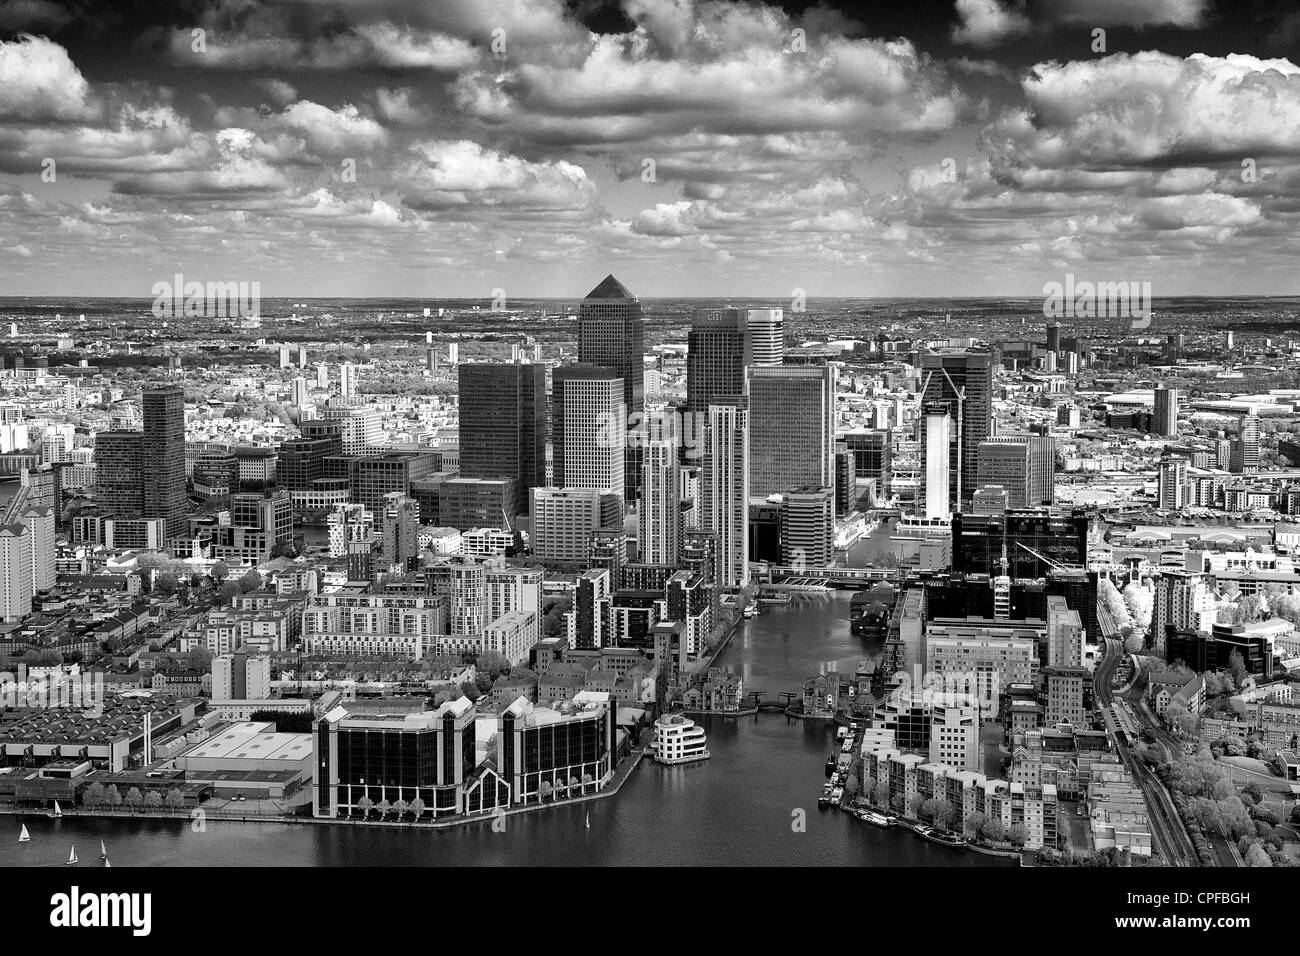 Aerial shot of the isle of dogs, London, looking at canary wharf in the distance - Stock Image